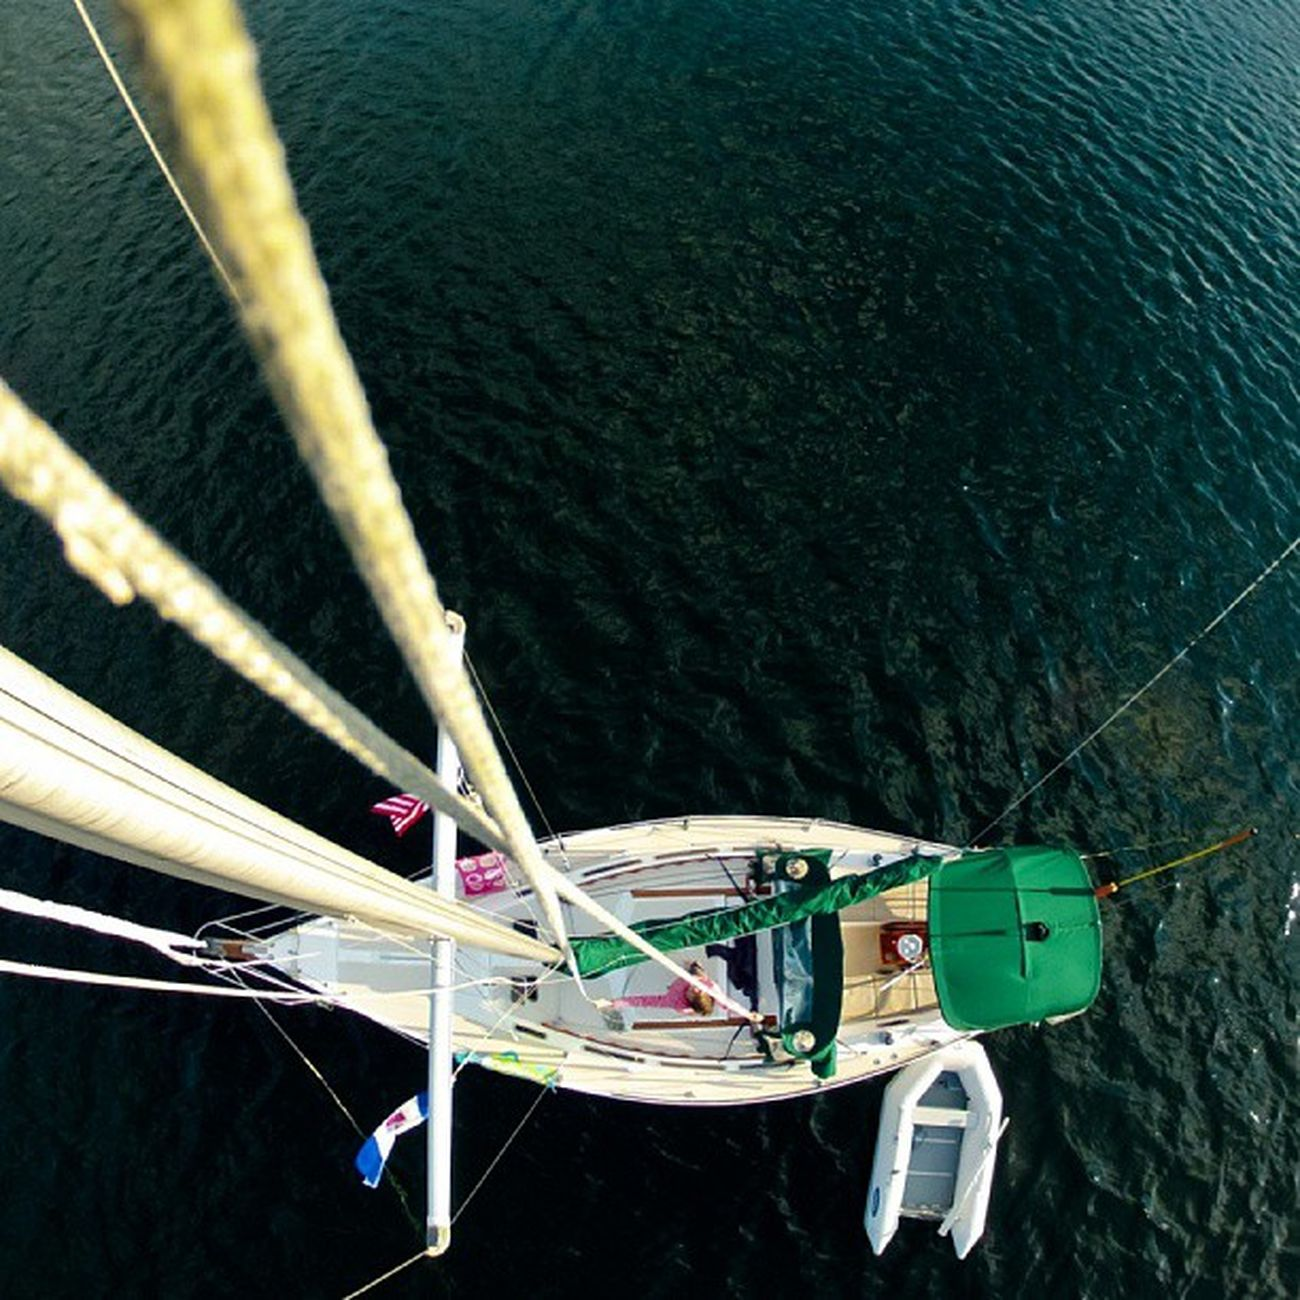 Photo from the Masthead of our Catalina30 . When this photo was taken, I seriously thought my camera was stuck at the top when it became intertwined with a halyard, and that I'd be going up afterwards. Gopro Sailing igersottawa